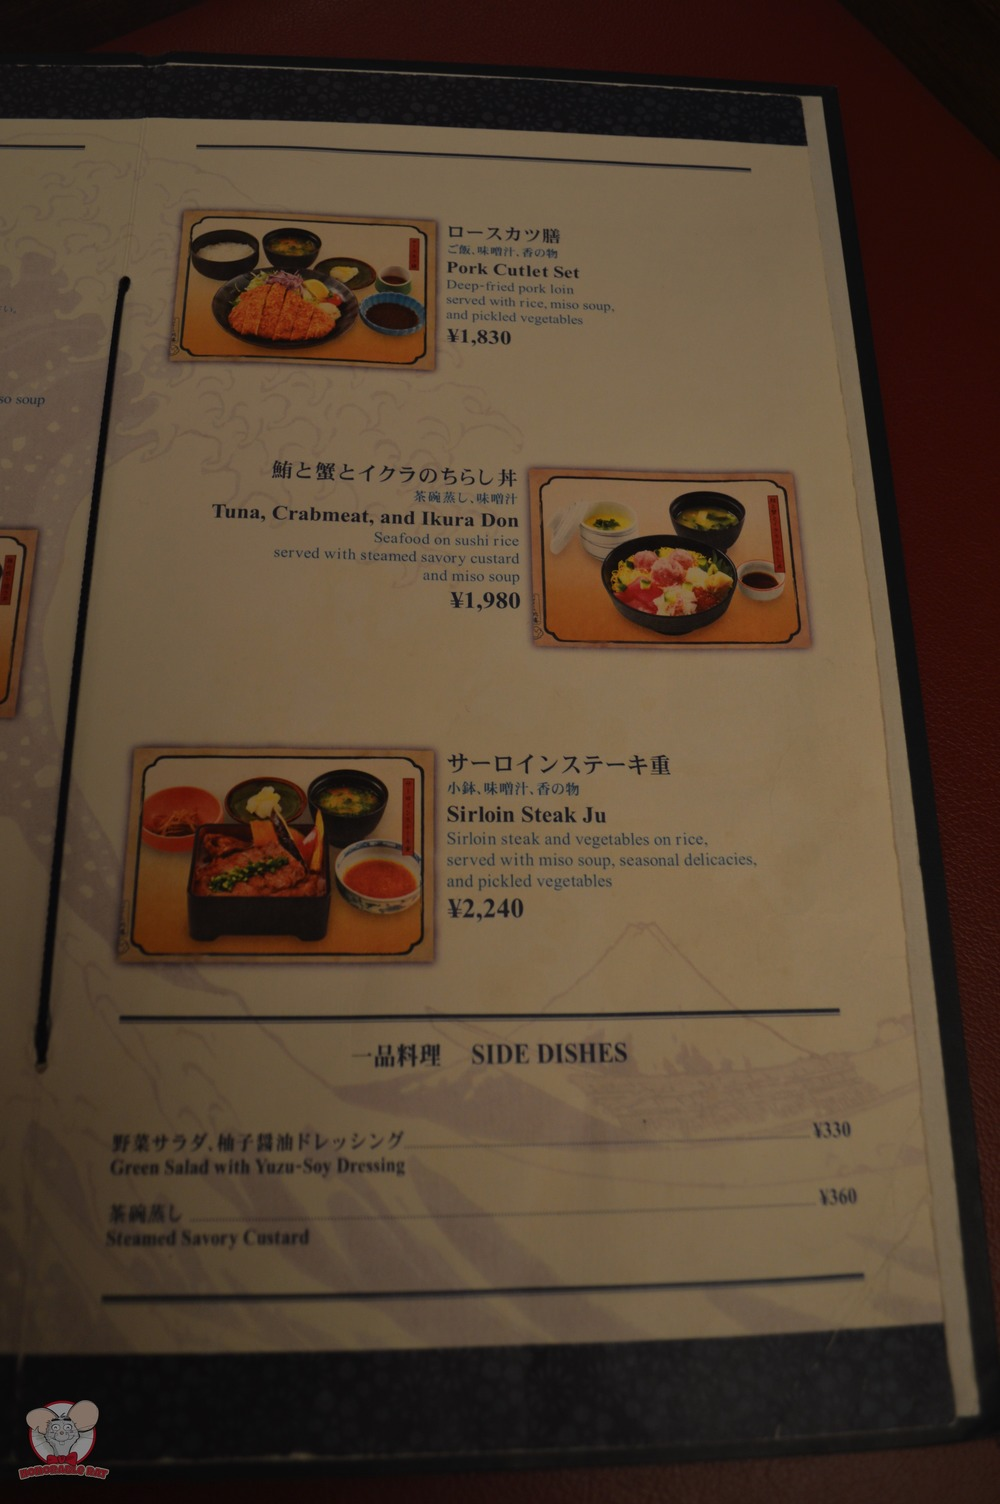 Restaurant Hokusai Menu (Main Dishes and Side Dishes)